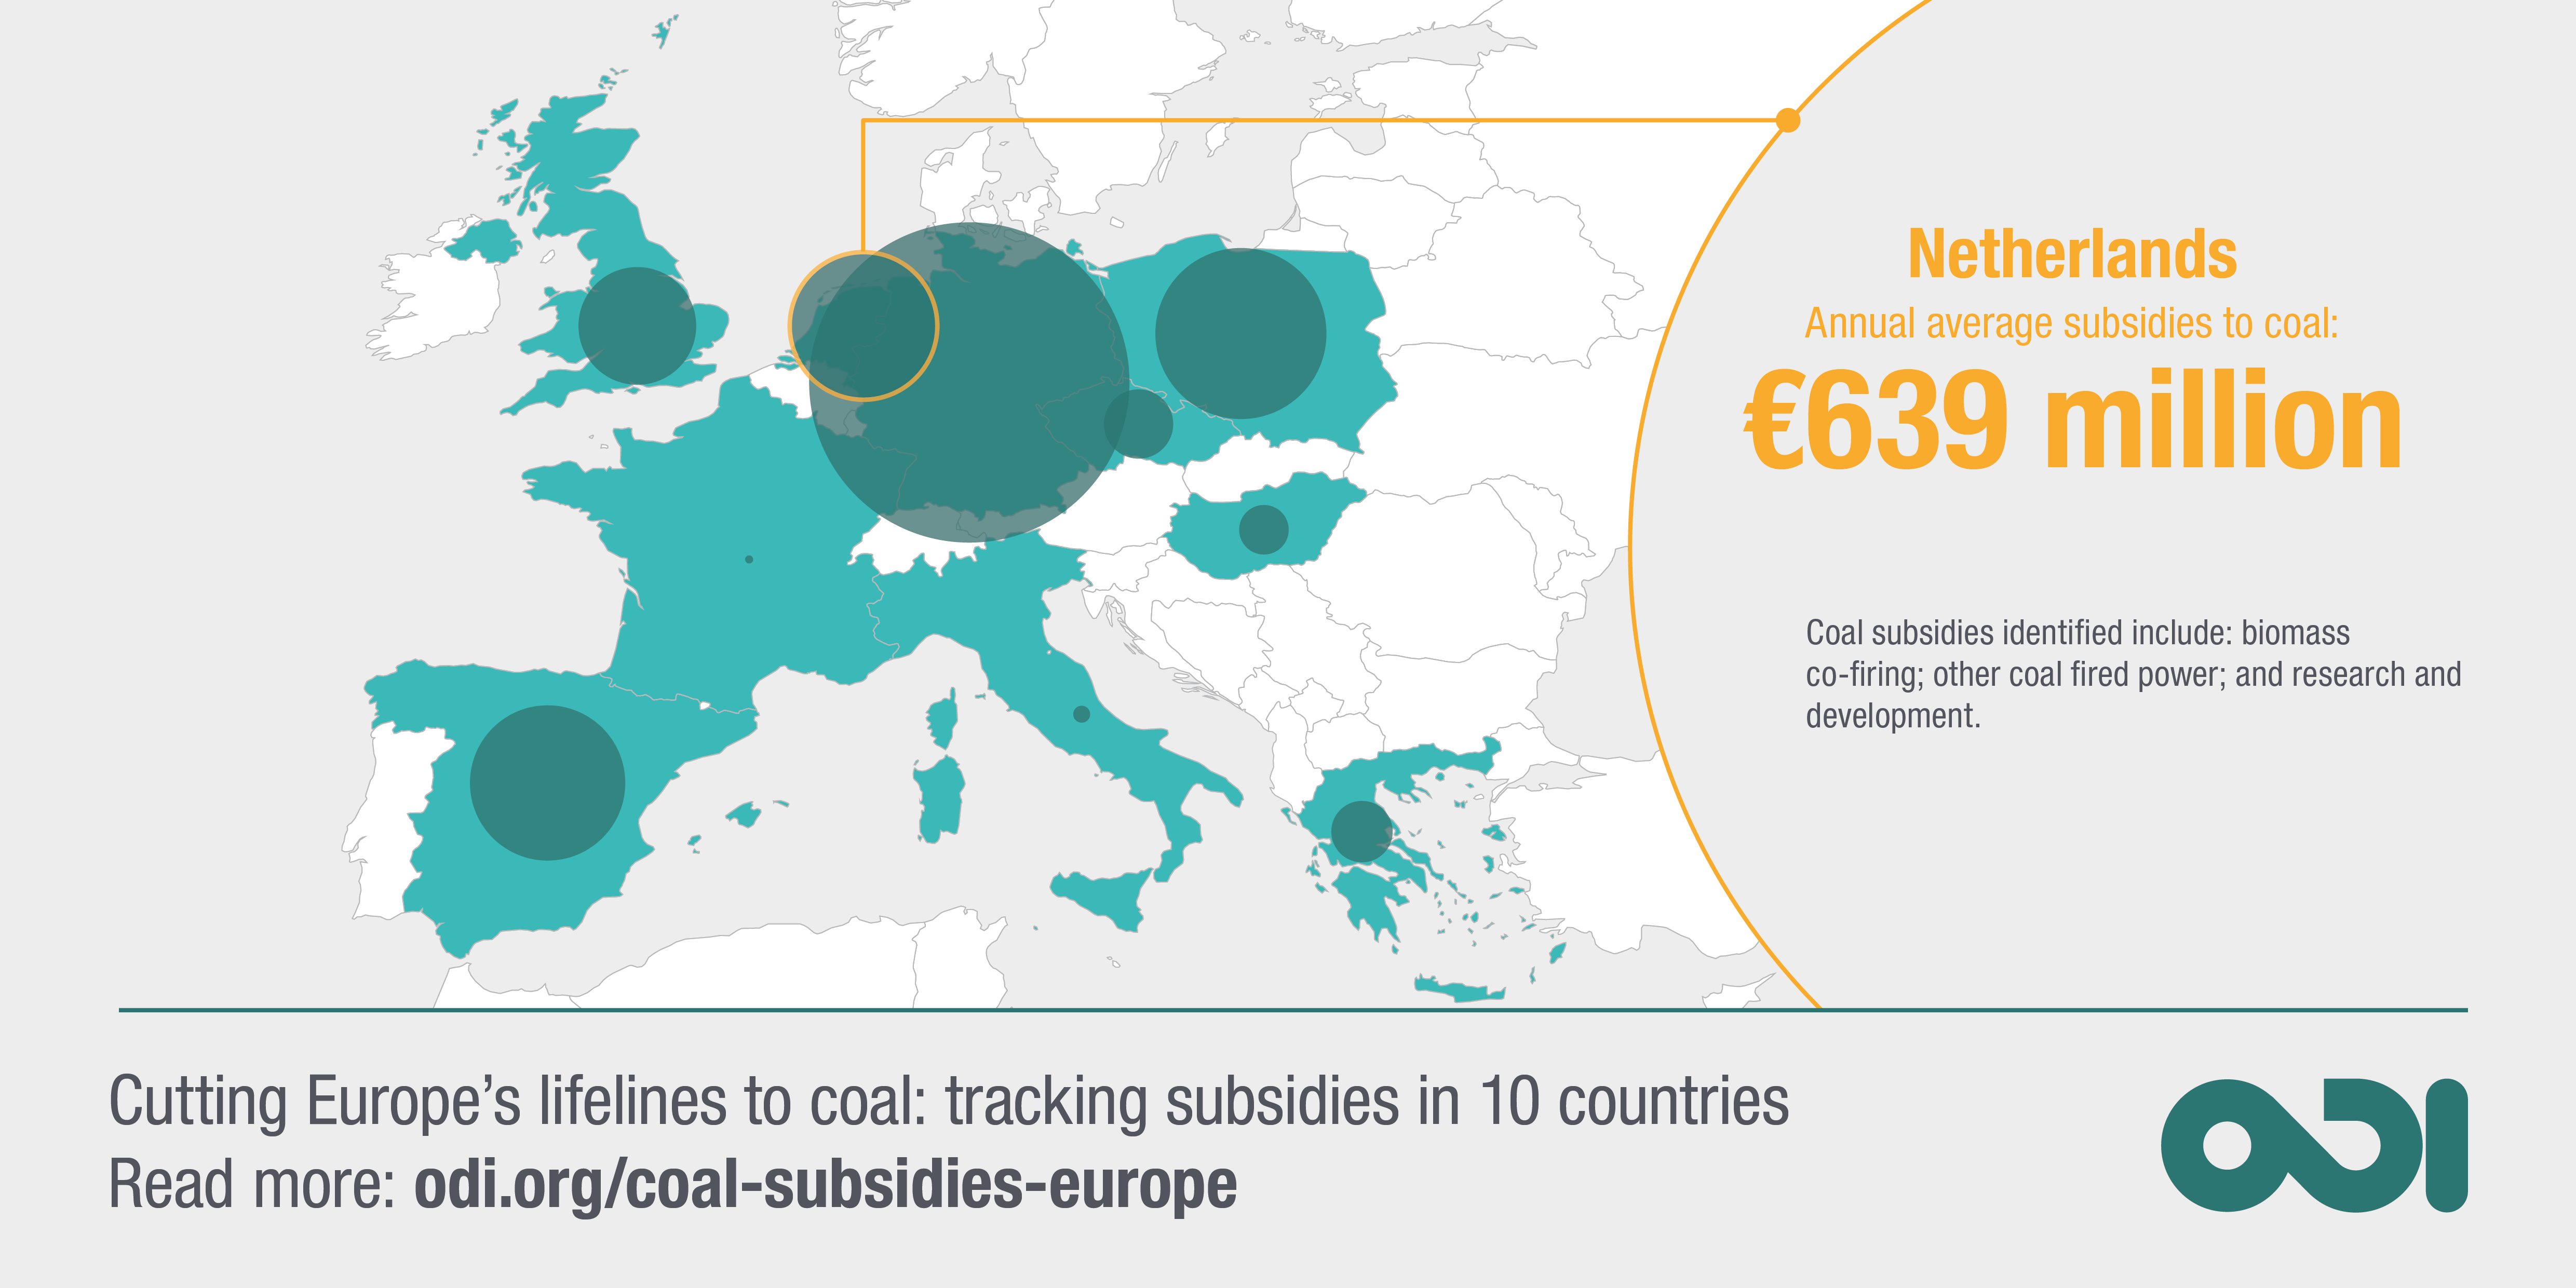 Infographic: Coal subsidies in Netherlands